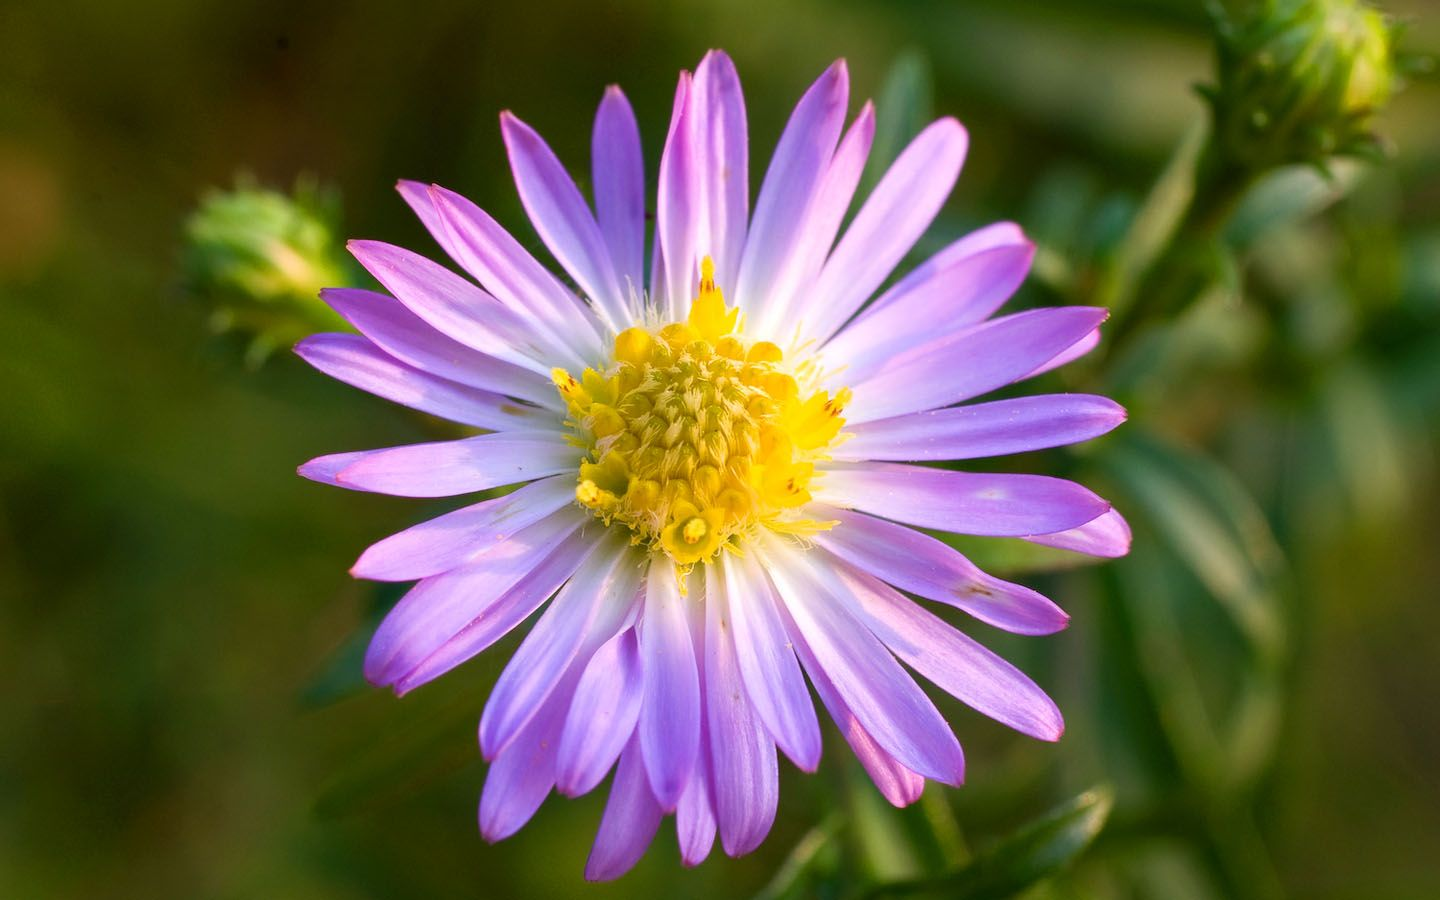 Aster September Birth Flower (Britain) Aster flower